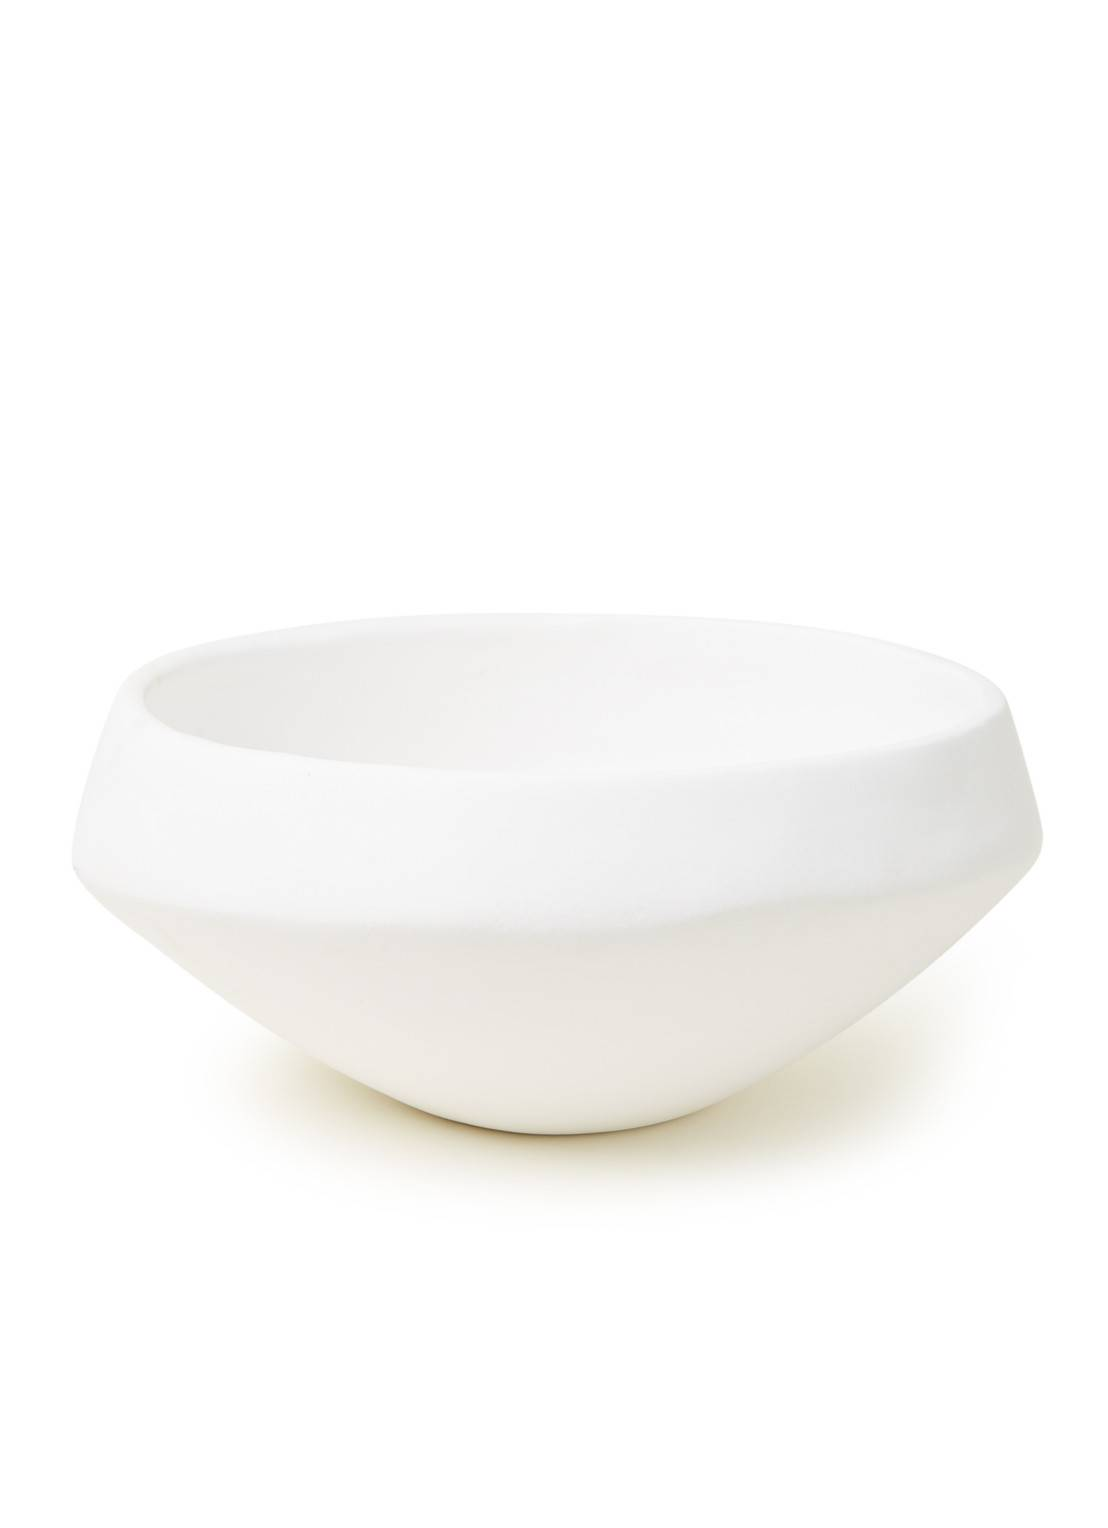 urban nature culture Bol artistique 26,5 cm - Blanc